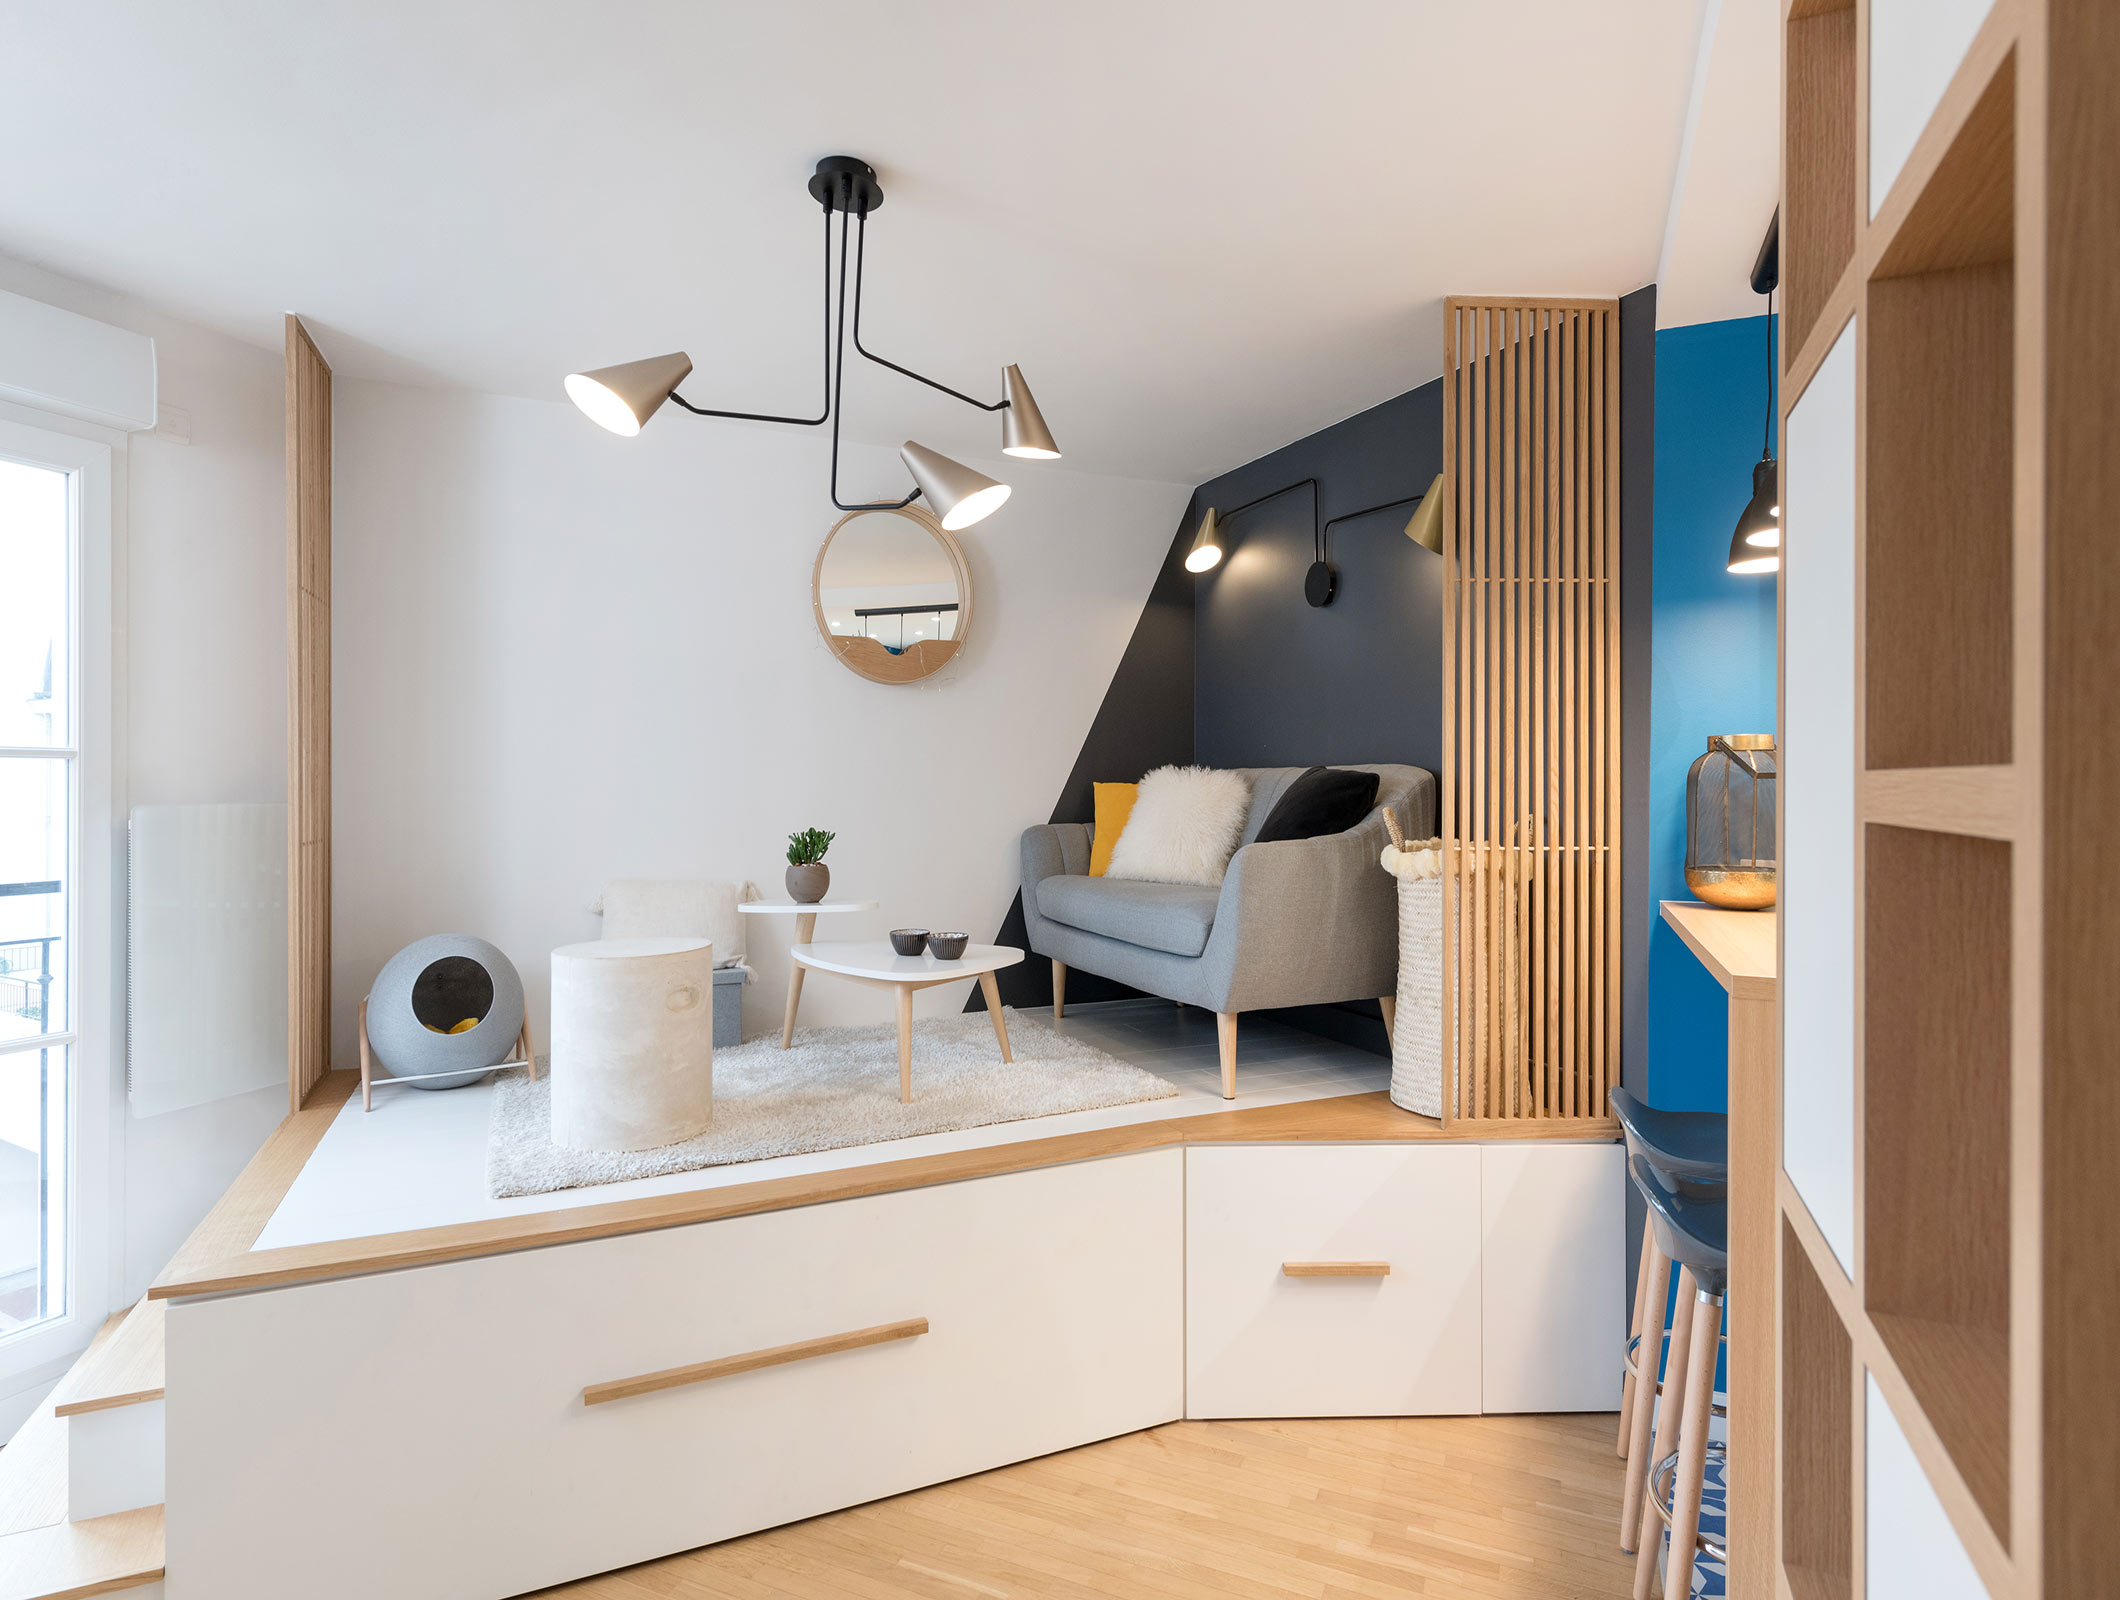 ce studio de 20m2 pres de paris cache un lit astucieux planete deco a homes world